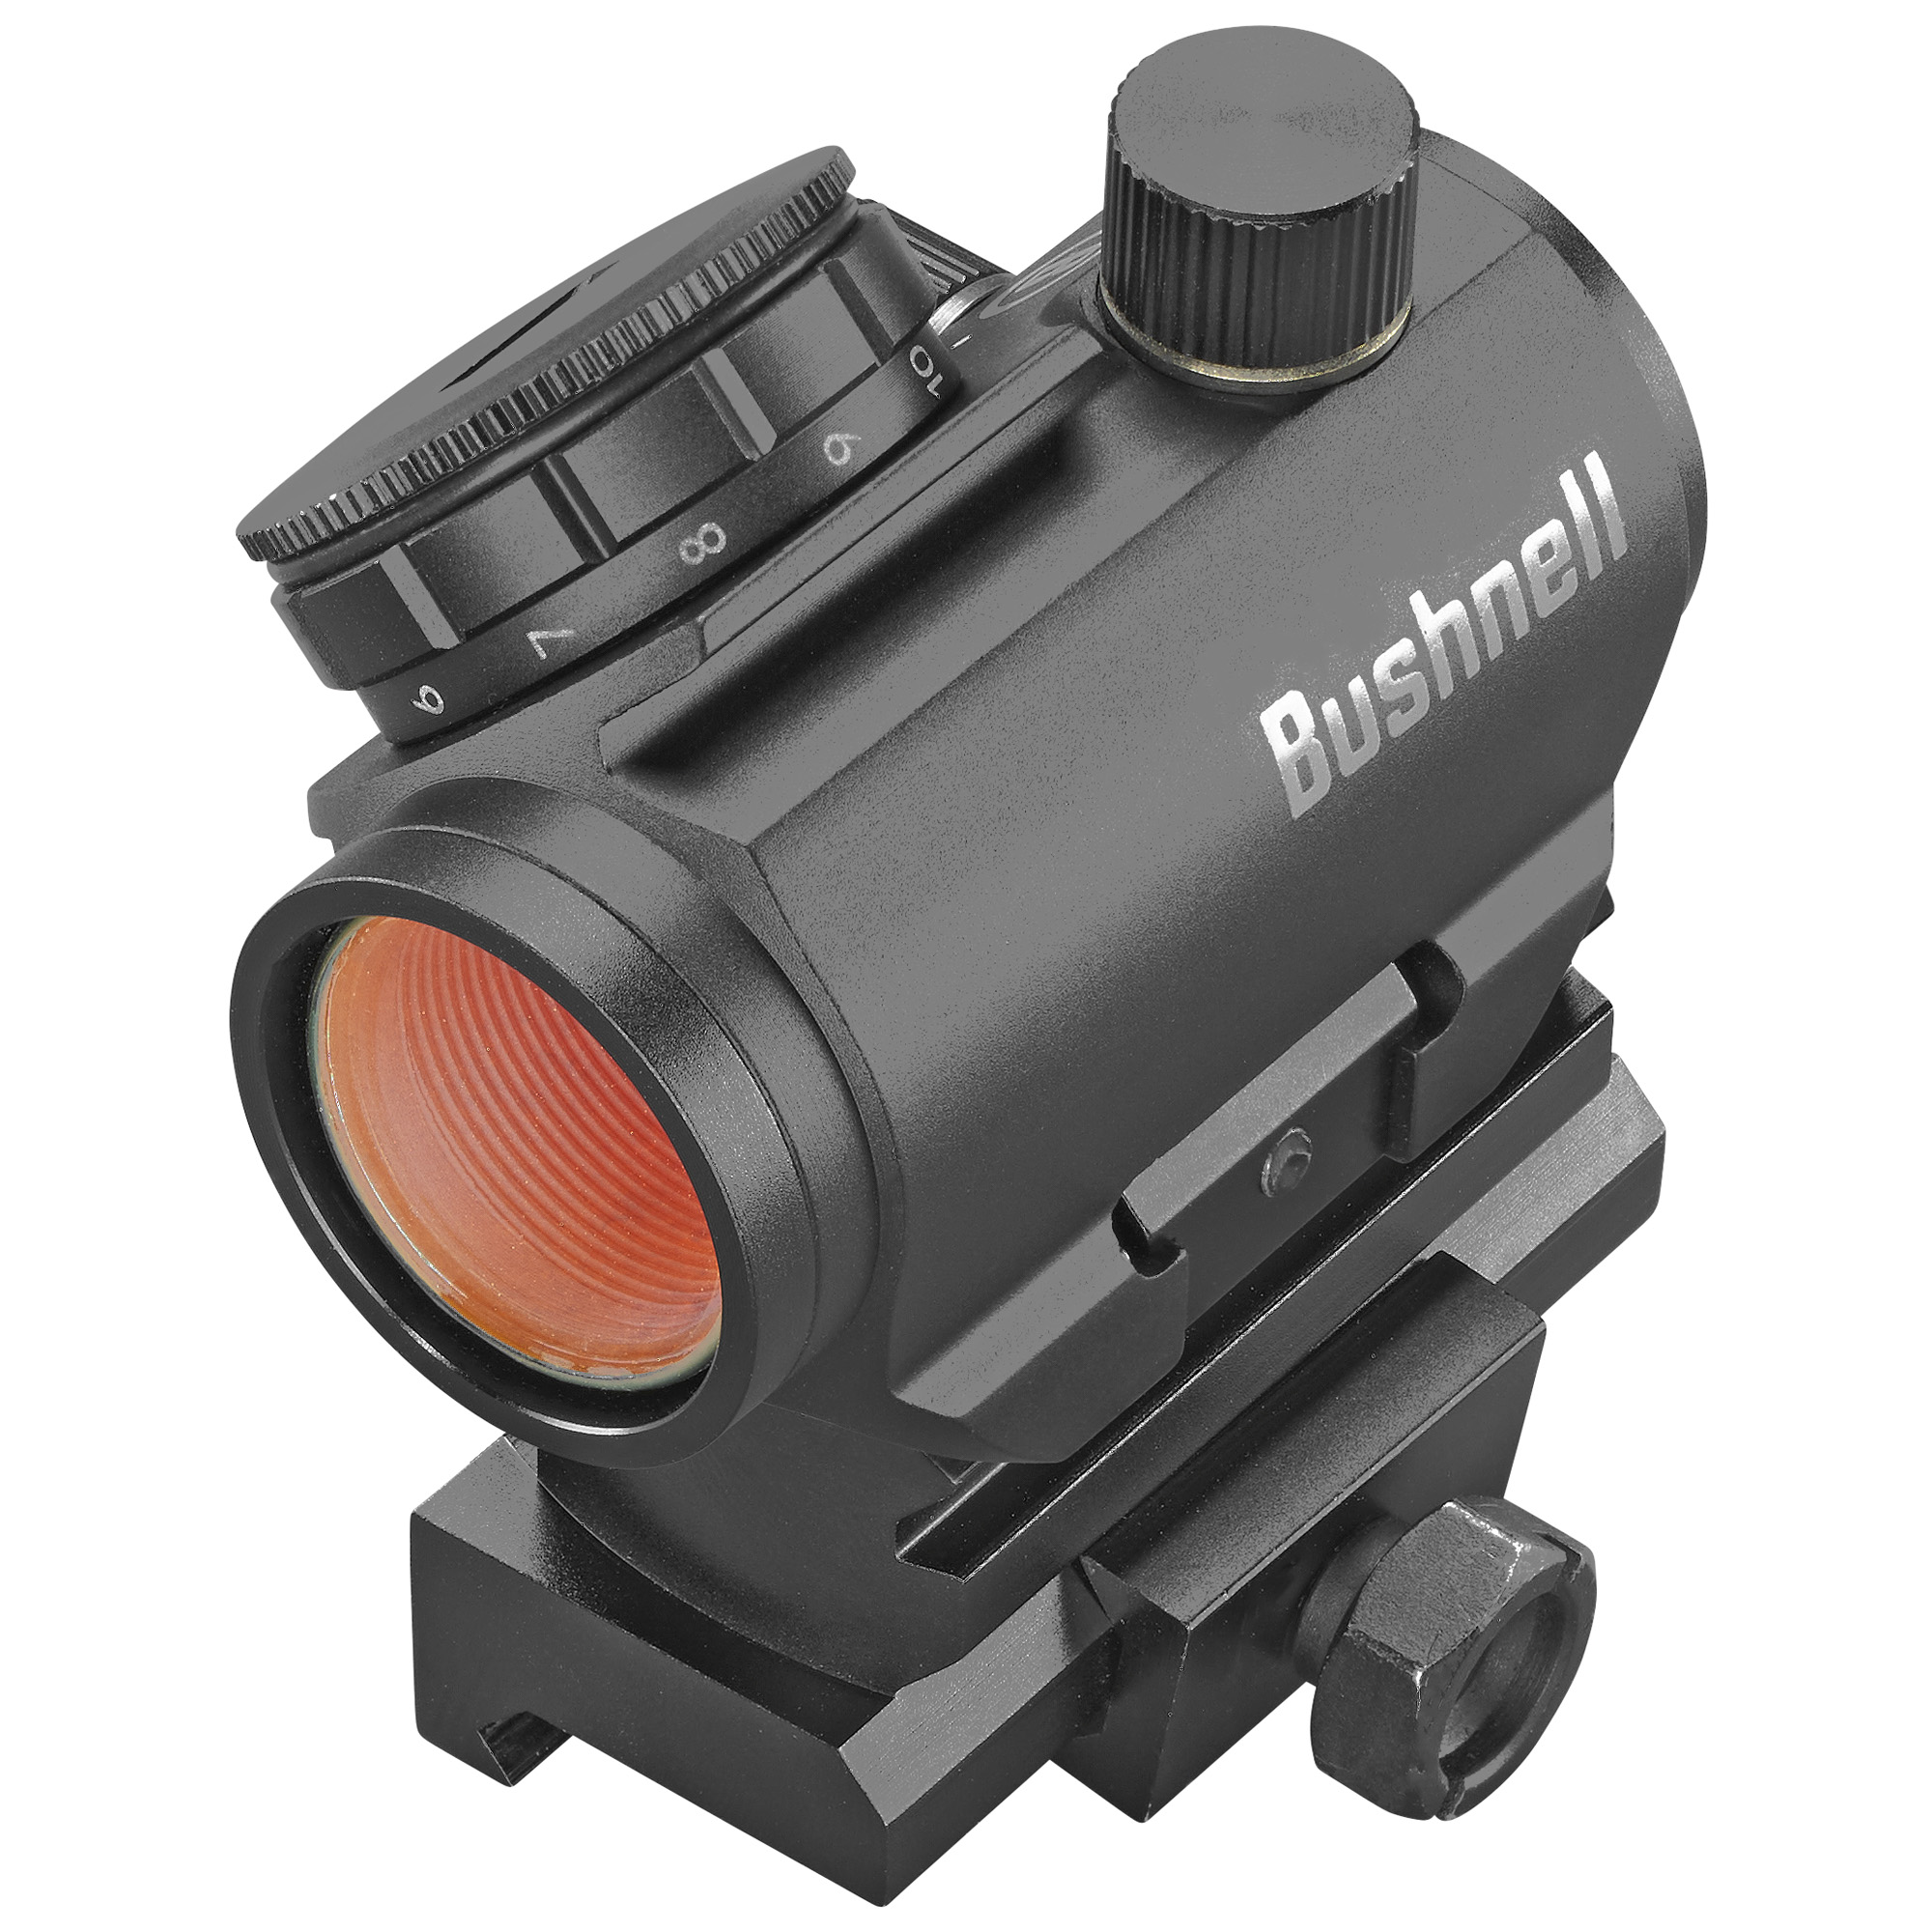 Bushnell Ar Optic Trs-25 Red Dot